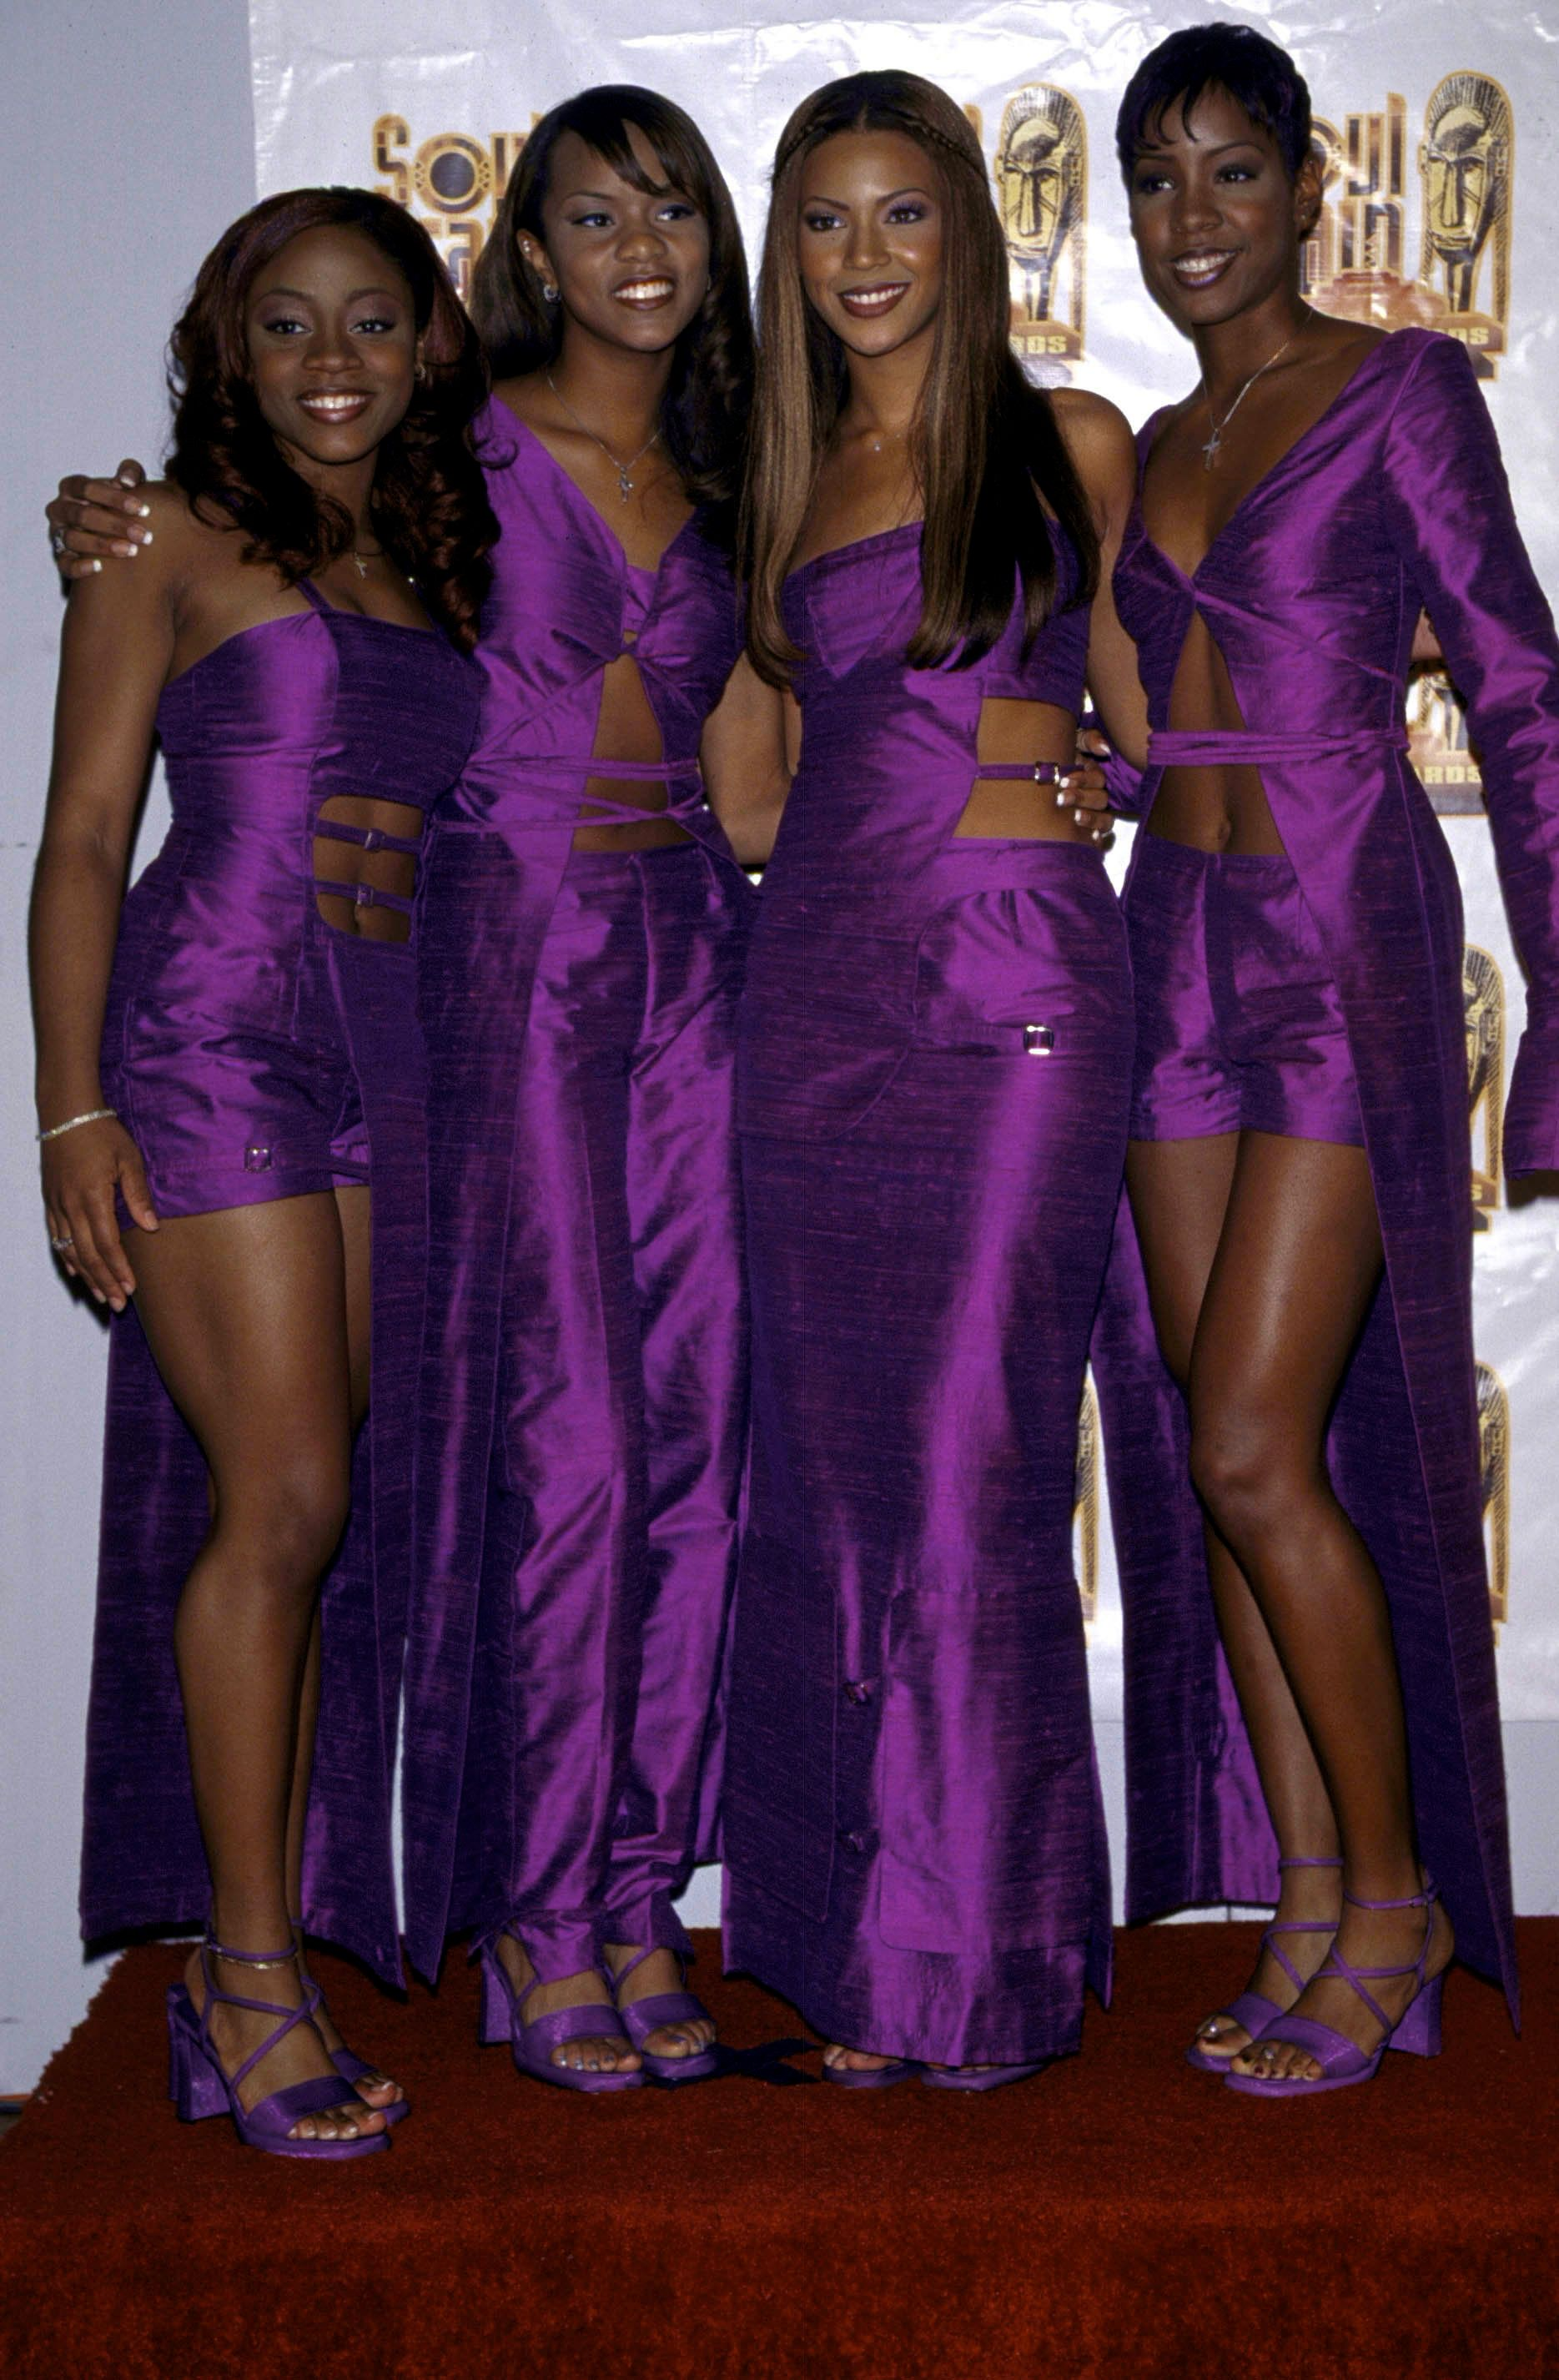 Roberston, Luckett, Knowles and Rowland at the 13th annual Soul Train Music Awards in California.